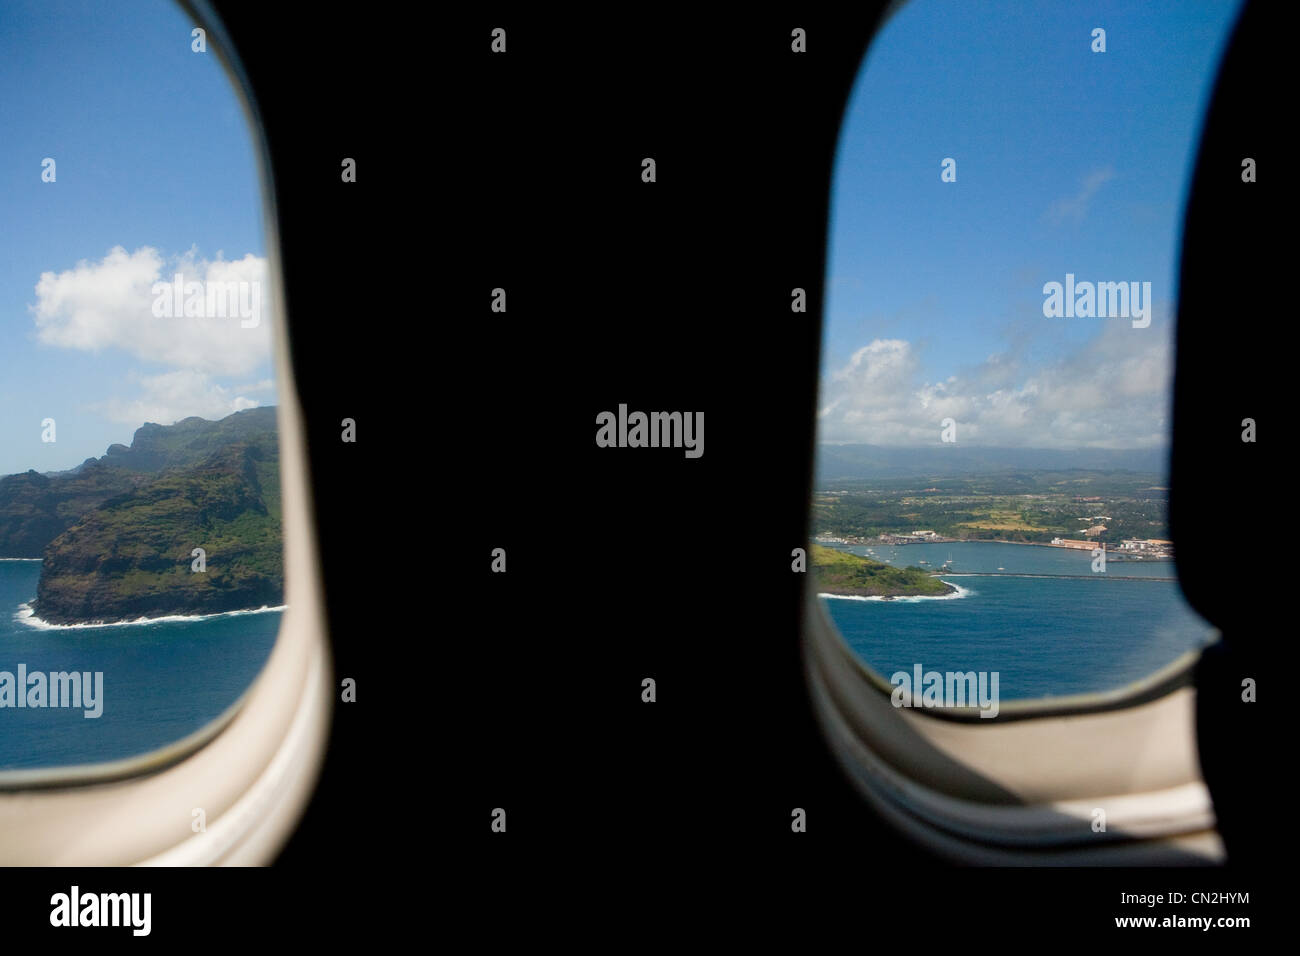 View of tropical island through airplane window - Stock Image